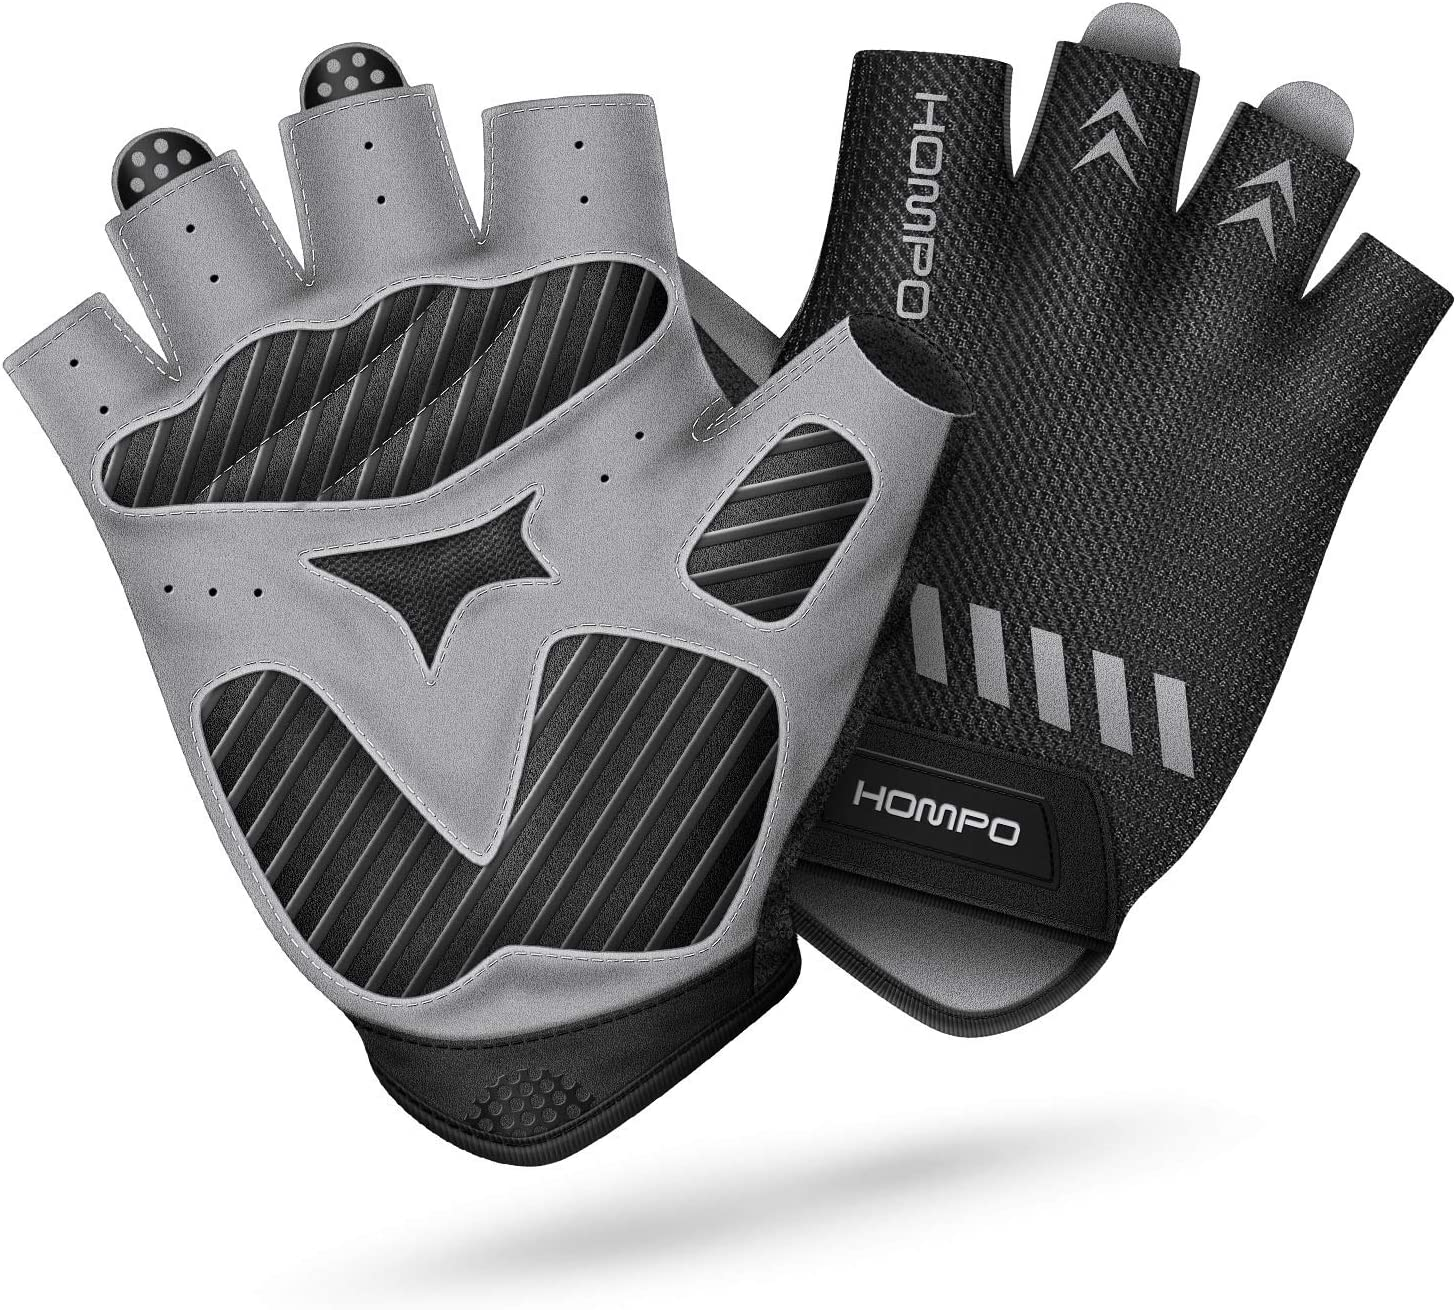 ICOCOPRO Cycling Gloves Breathable Road Mountain Biking Gloves with Adjustable Wrist Velcro Short Sports Gloves for Men Women Half Finger Bike Gloves Anti-Slip Shock Absorbing Padded